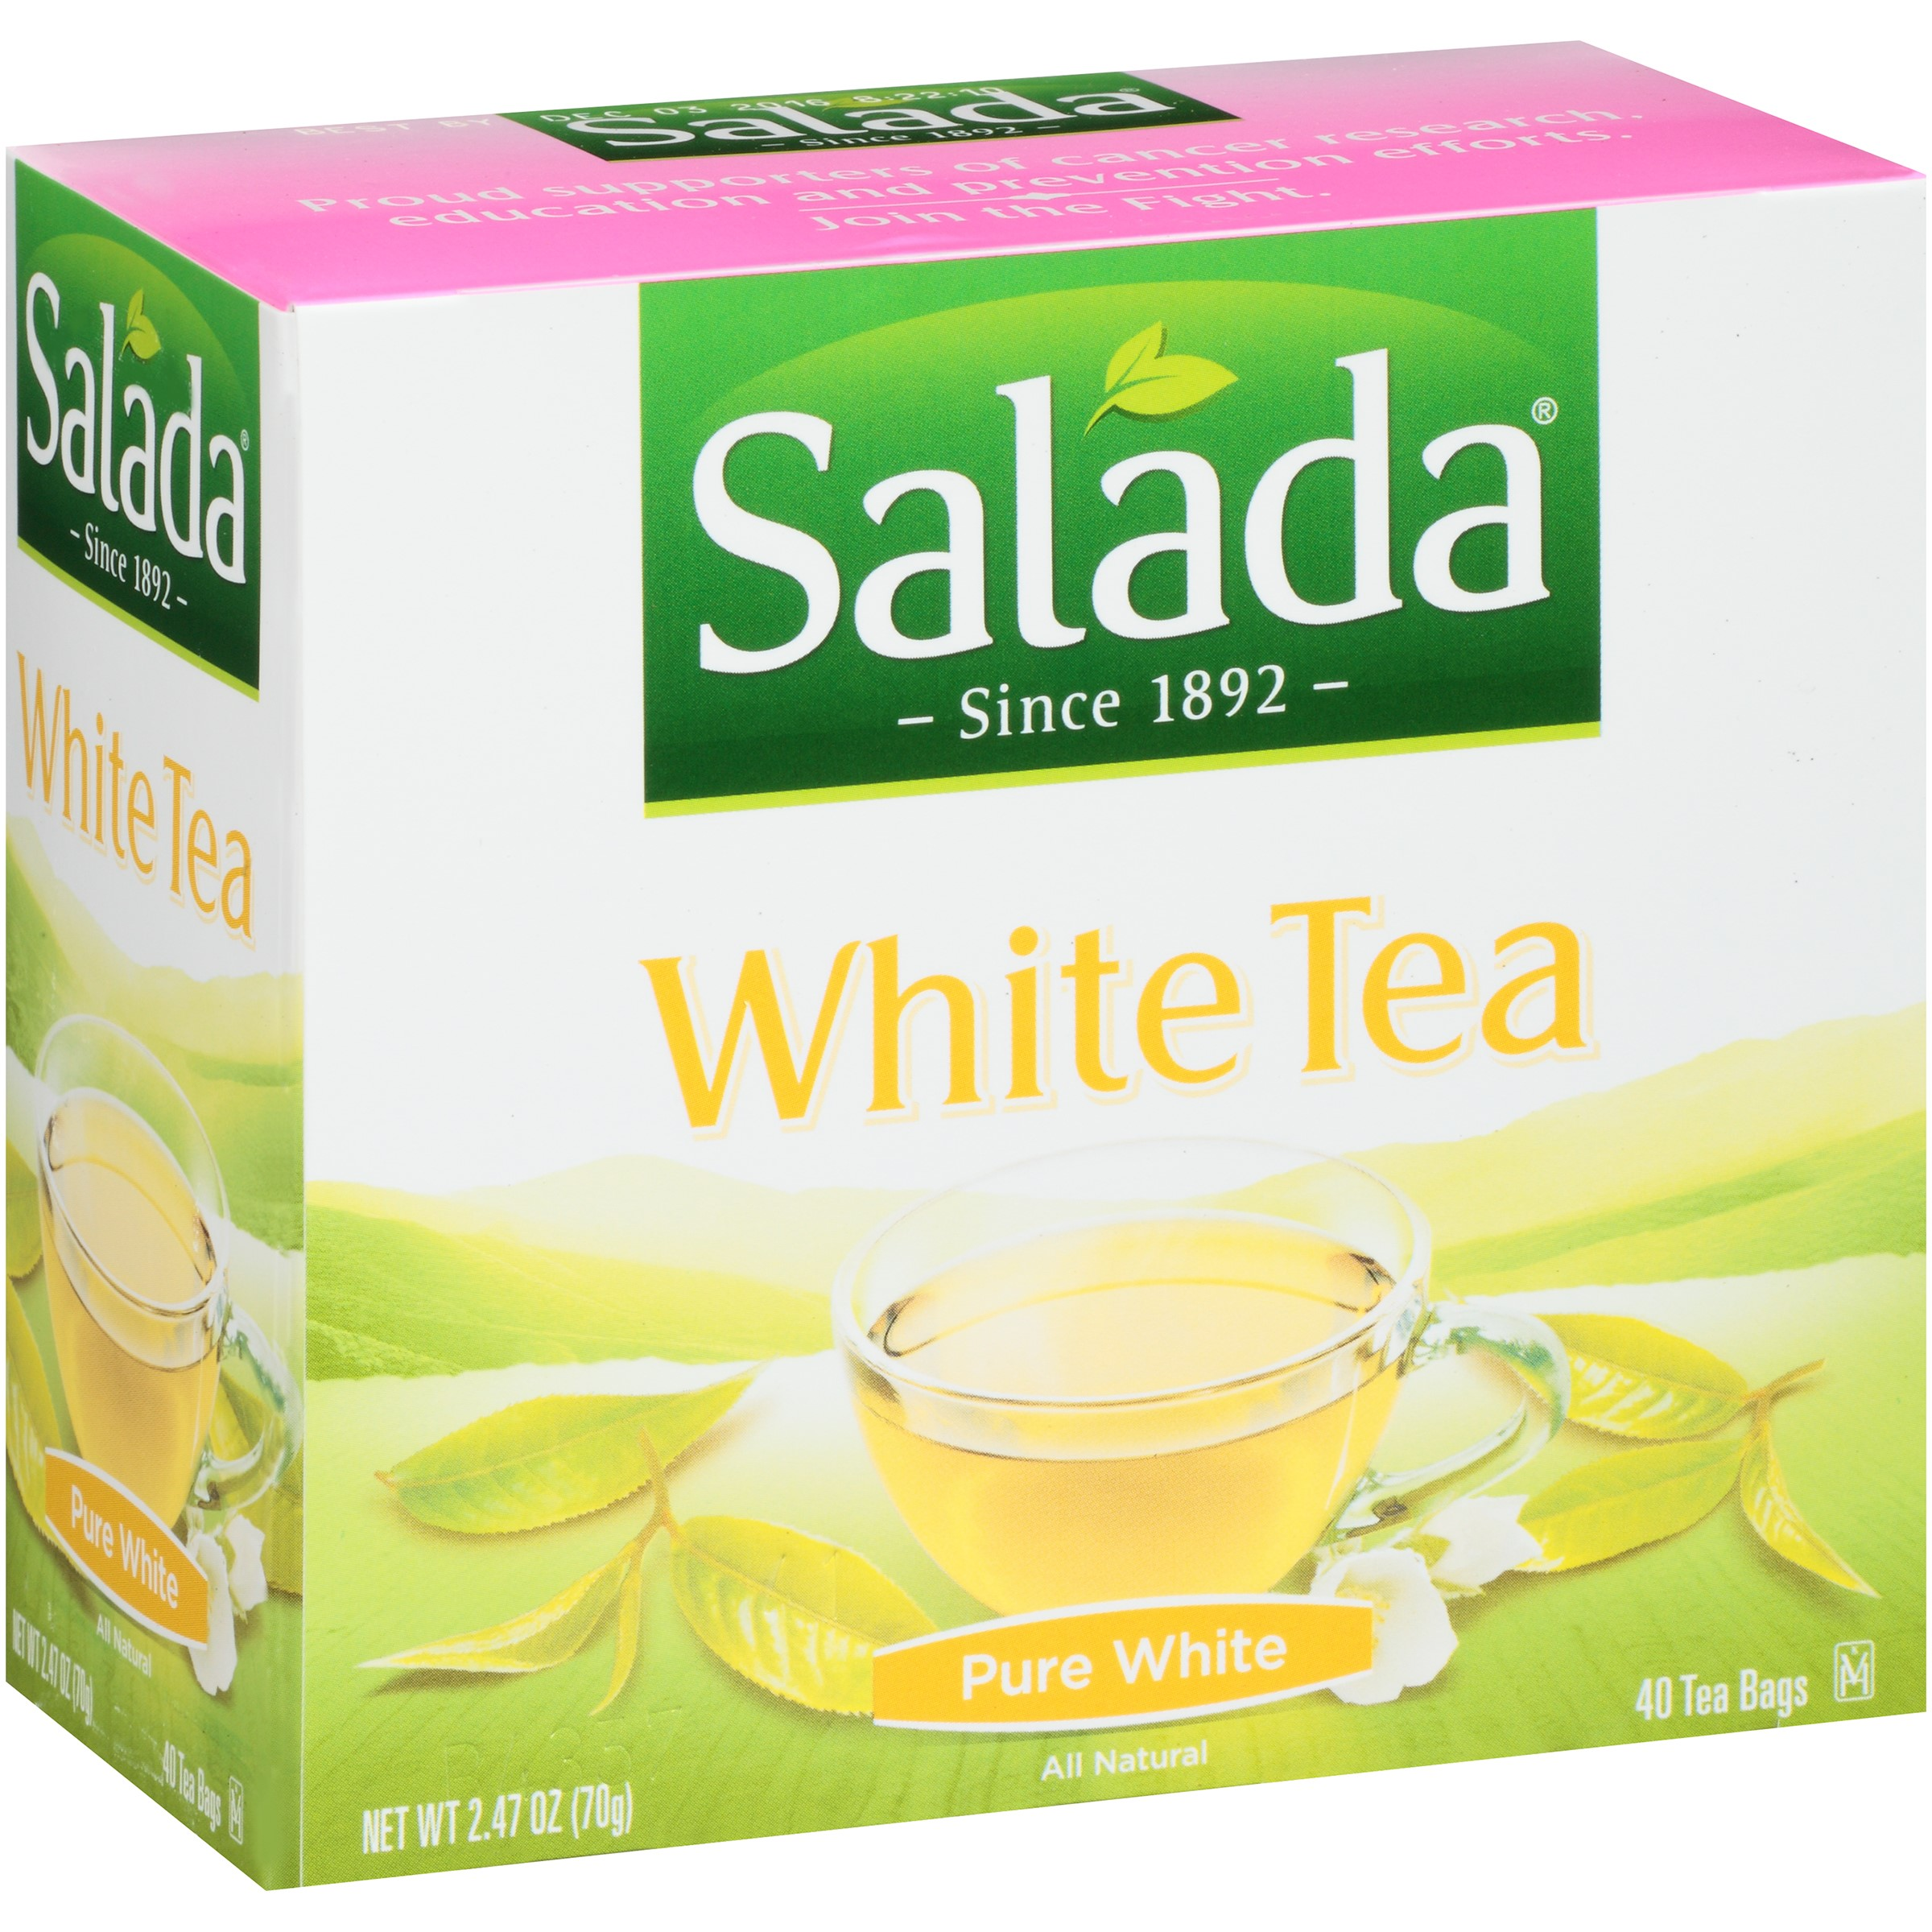 Salada White Tea Pure White - 40 CT